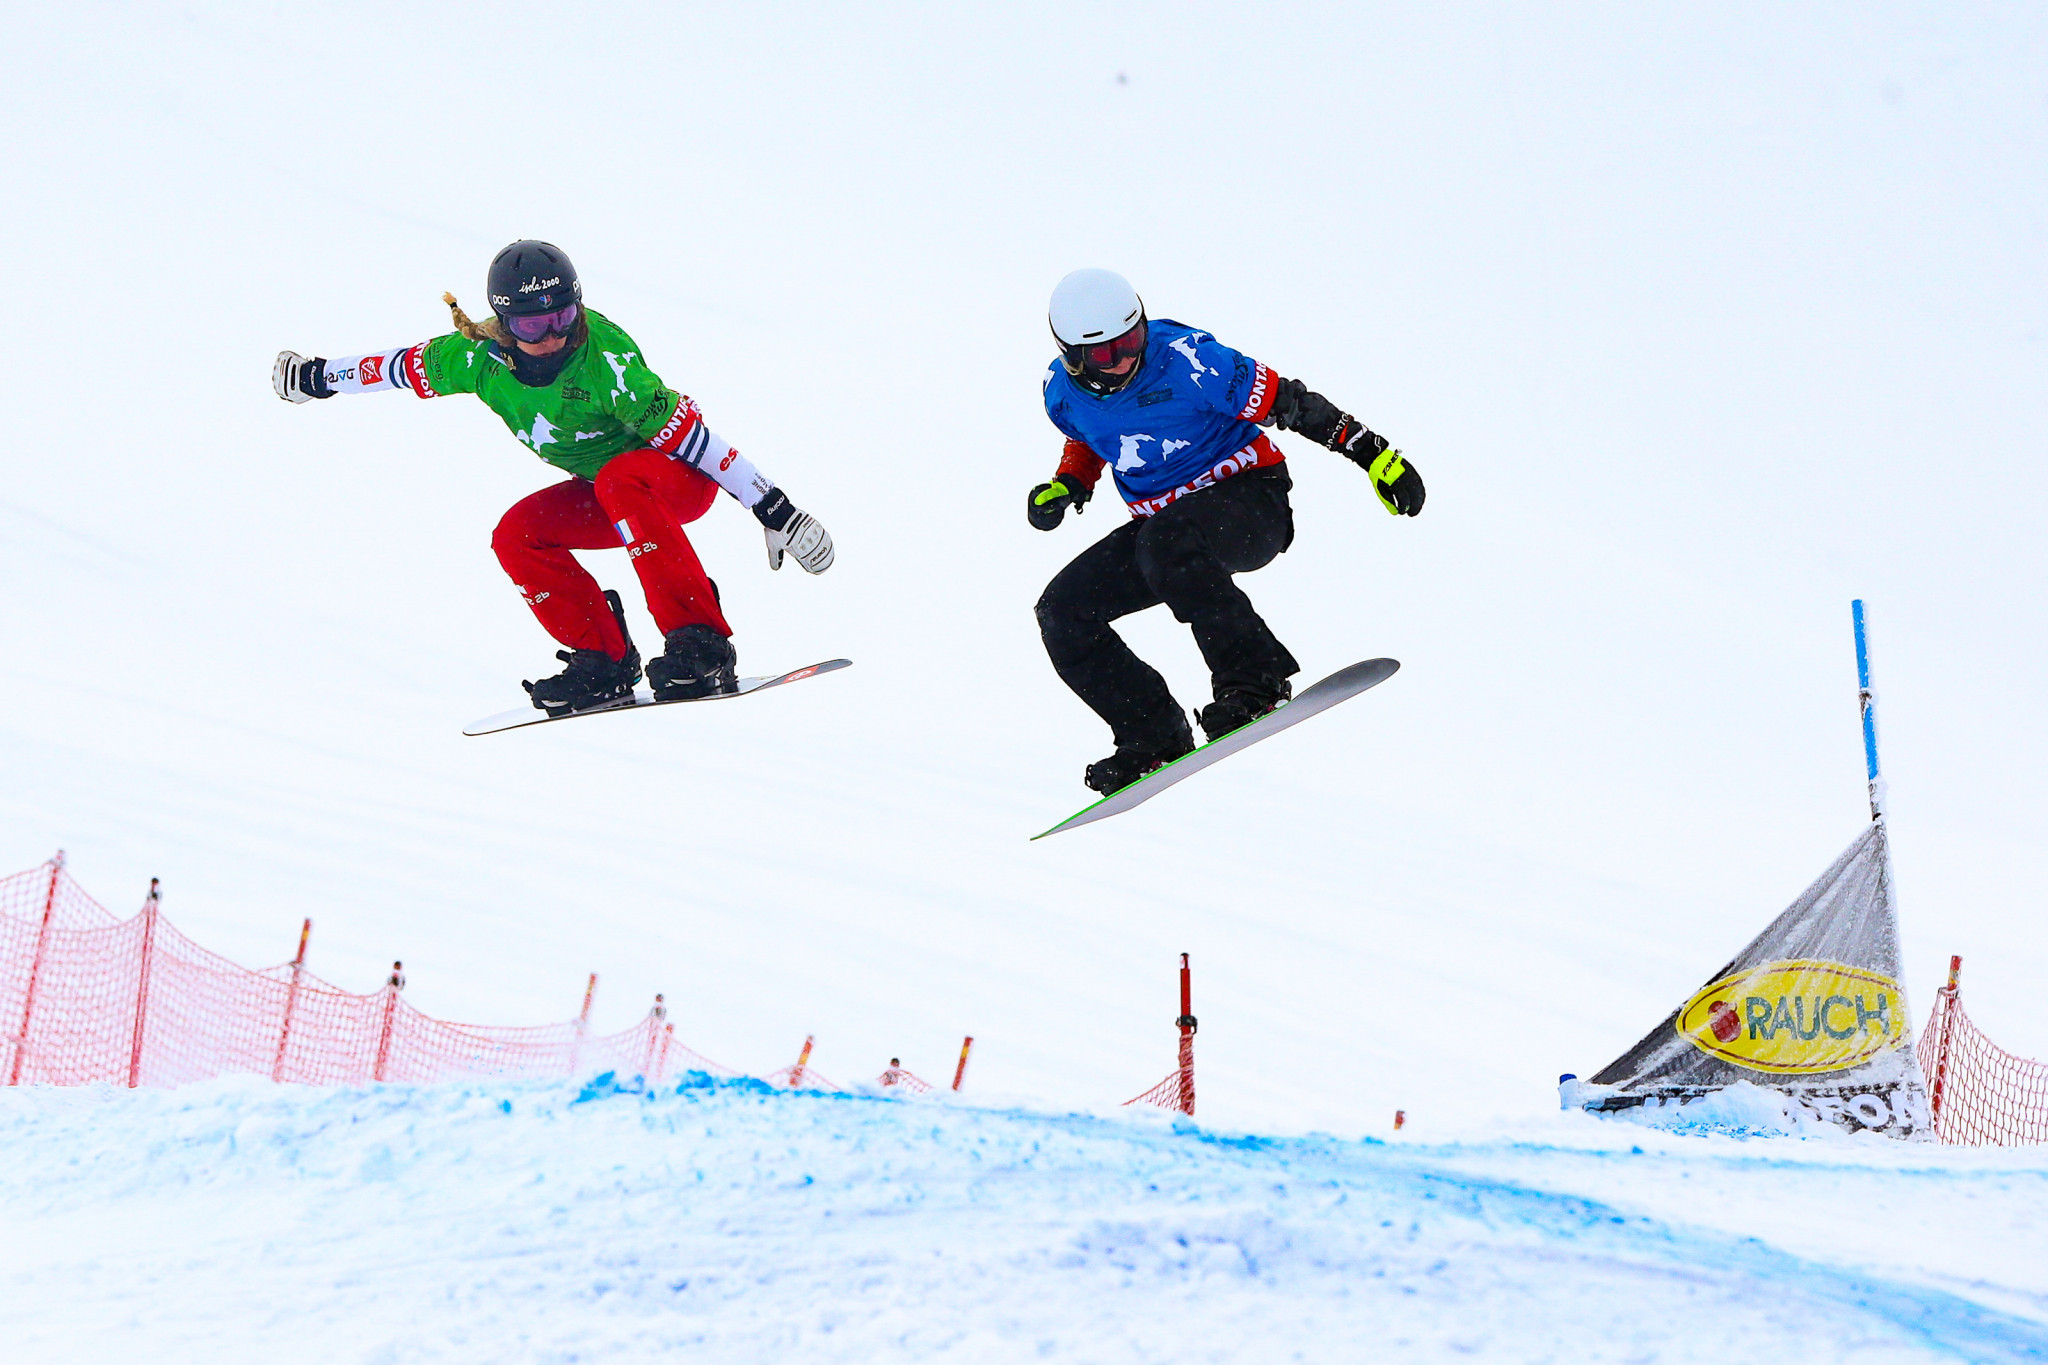 Snowboard Cross World Cup leg in Germany called off as COVID-19 cases rise